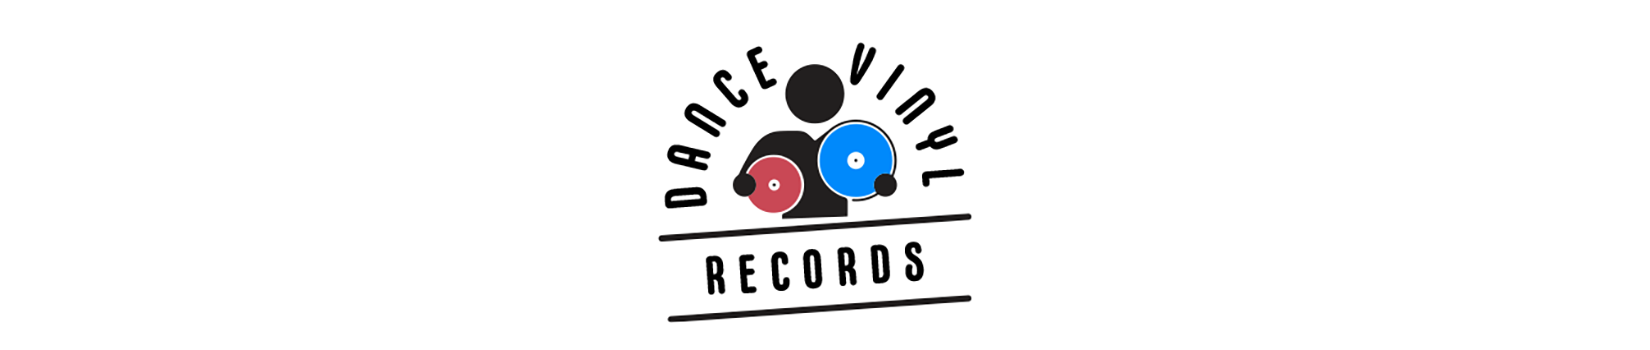 Dance Vinyl Records